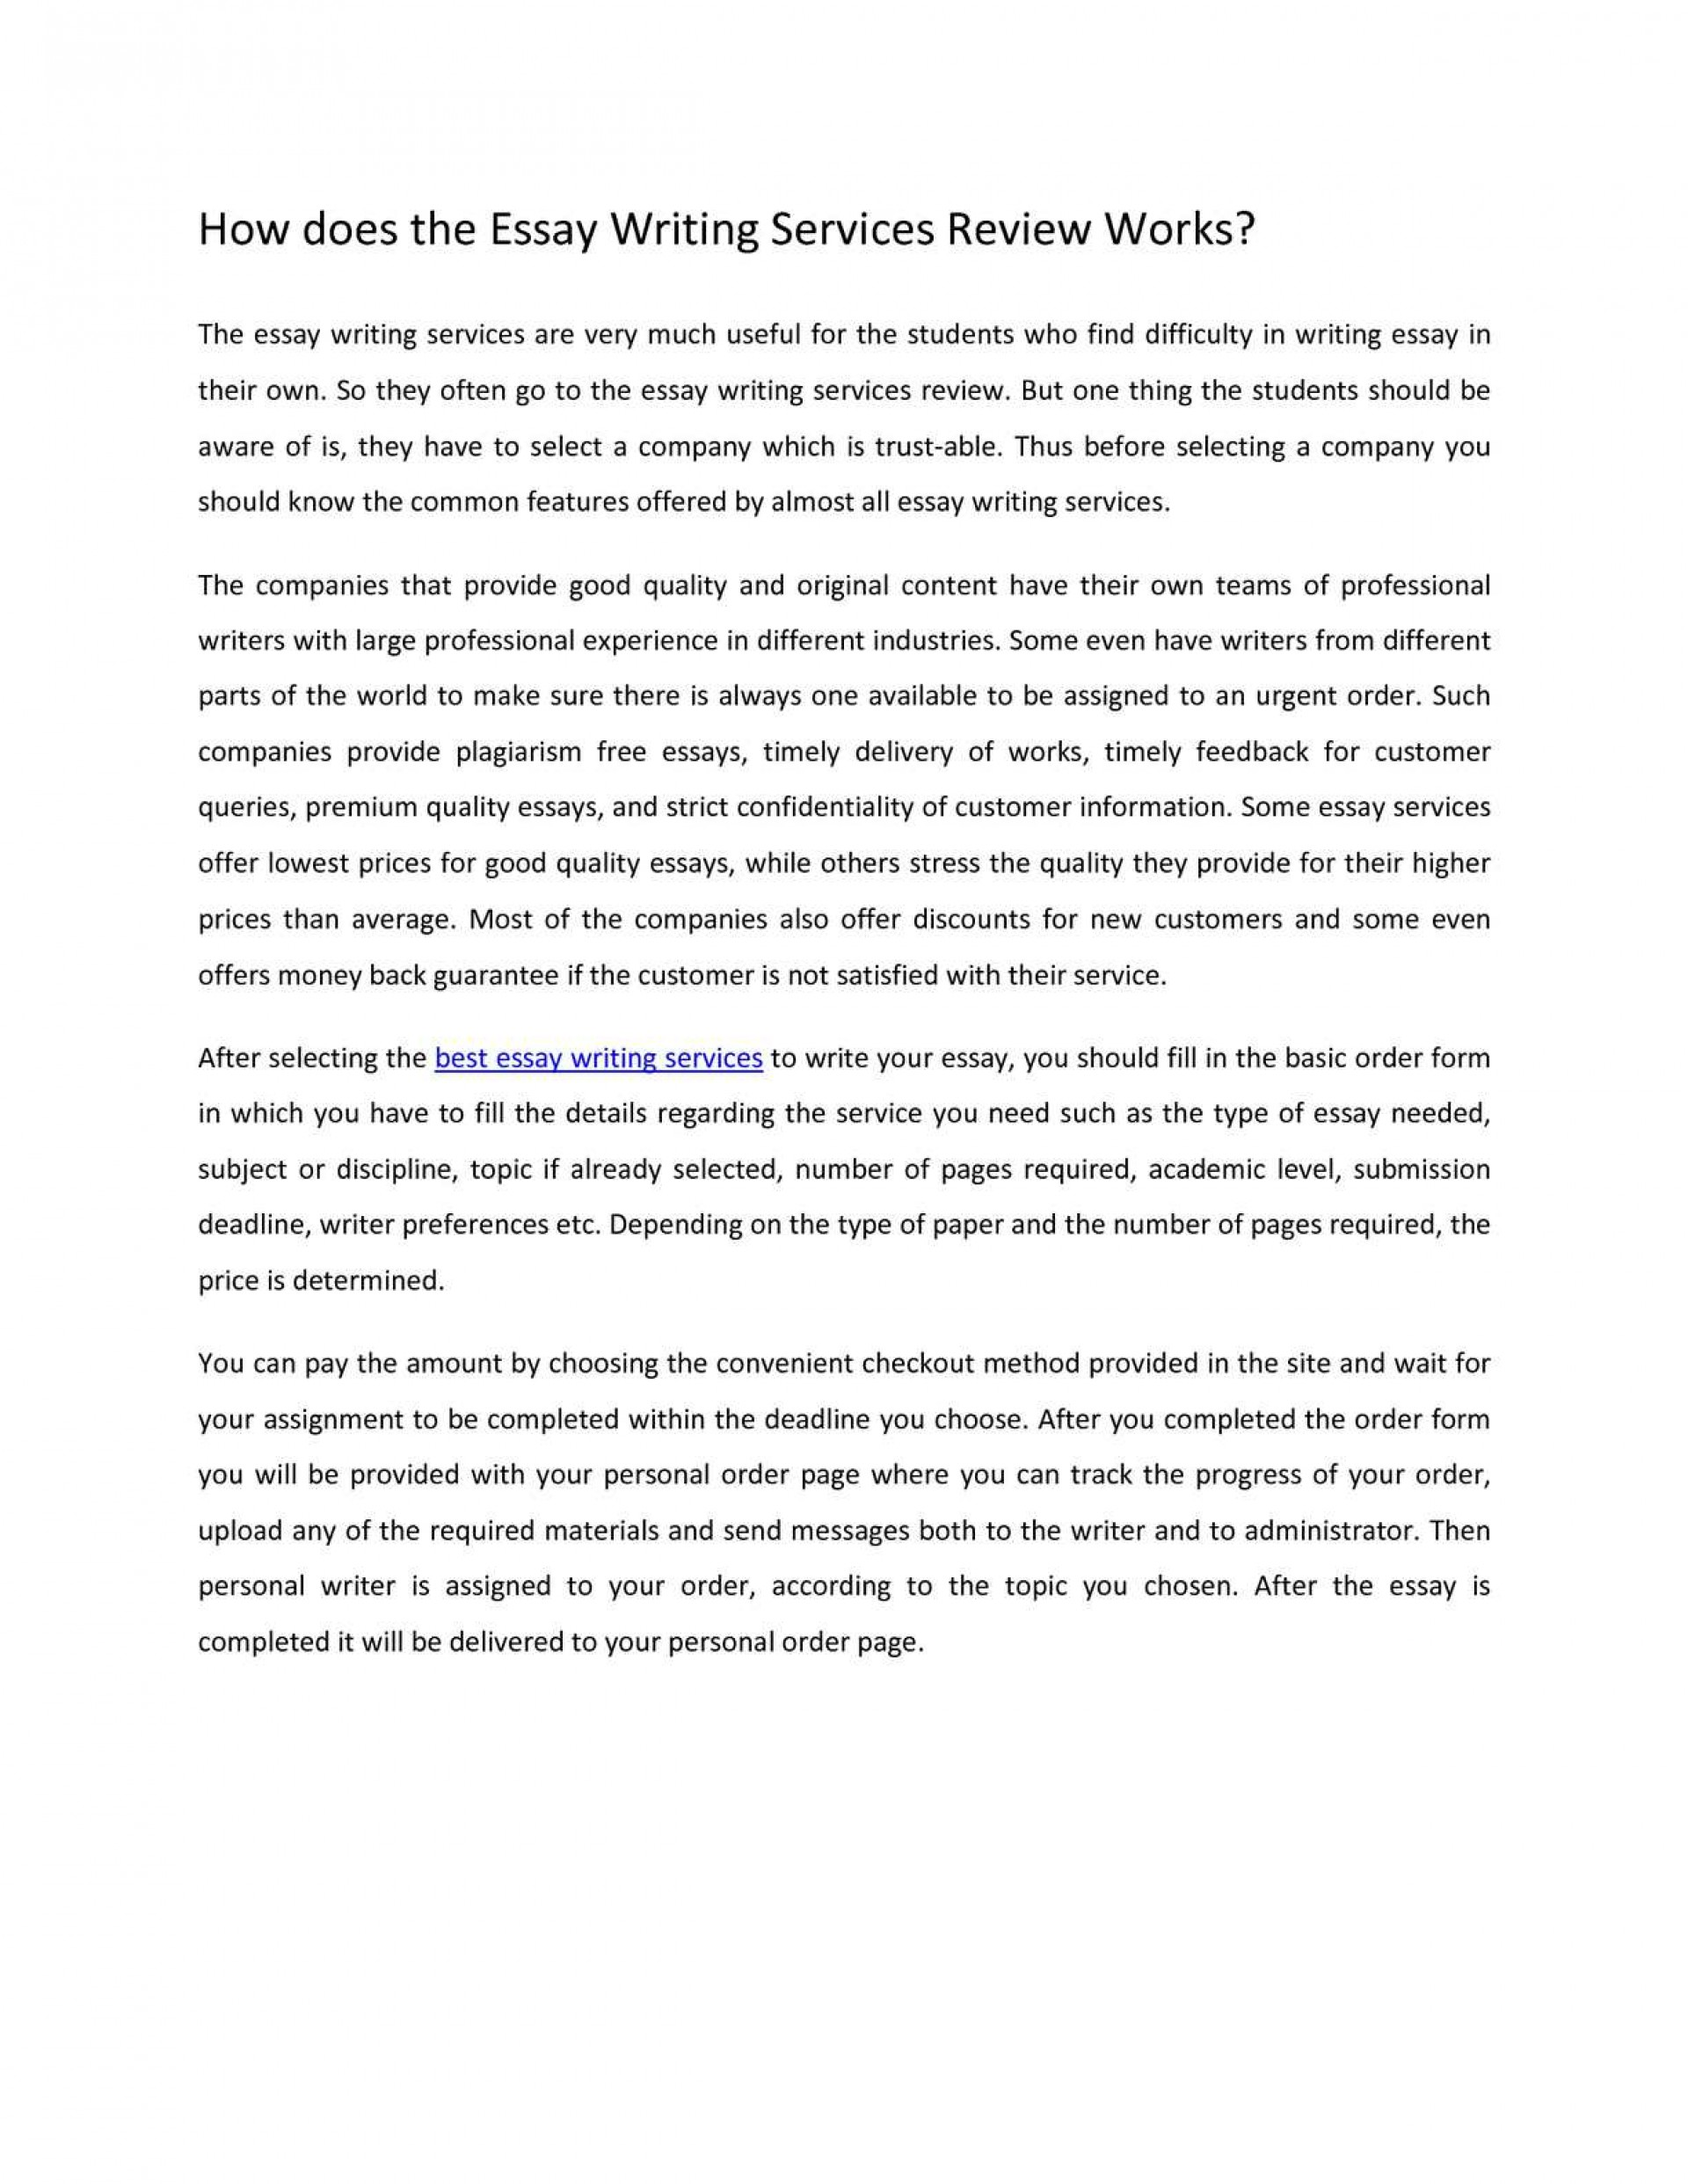 024 Essay Example P1 Best Help Impressive Review Writing Services Uk Reviews Service 1920